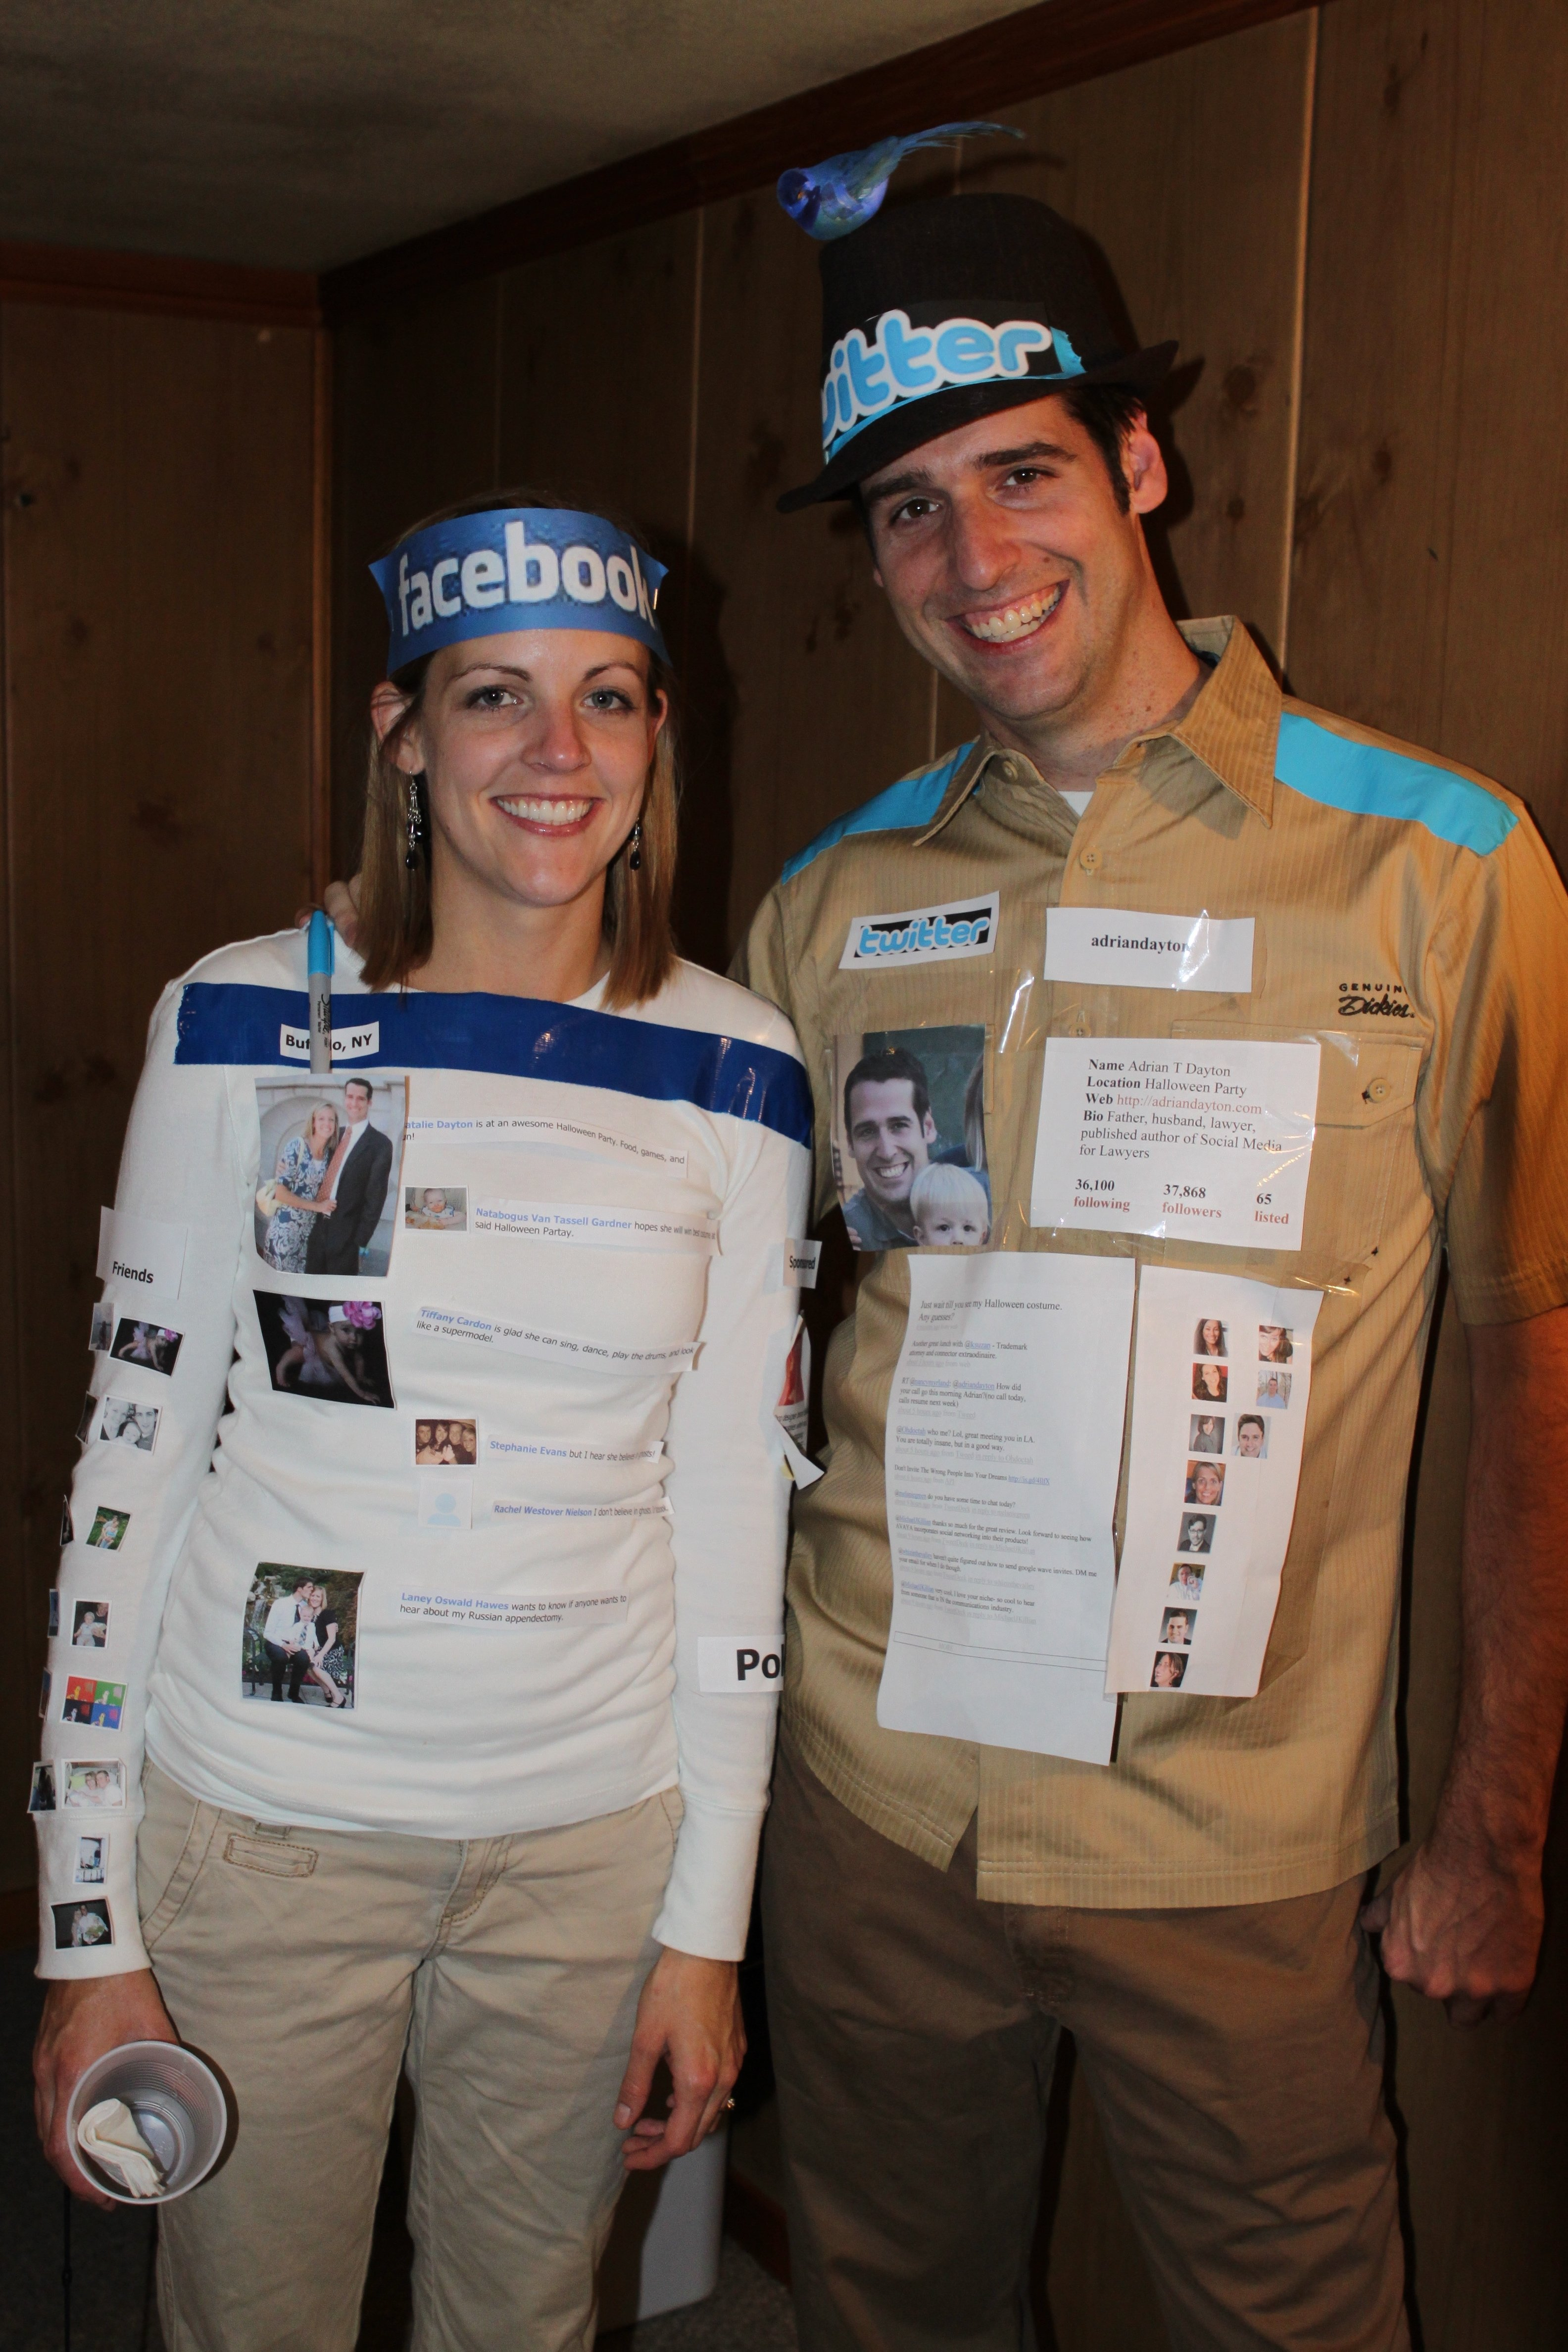 10 Pretty Funny Costume Ideas For Couples the social media couple costume funny costume ideas for  sc 1 st  Unique Ideas 2018 & 10 Pretty Funny Costume Ideas For Couples